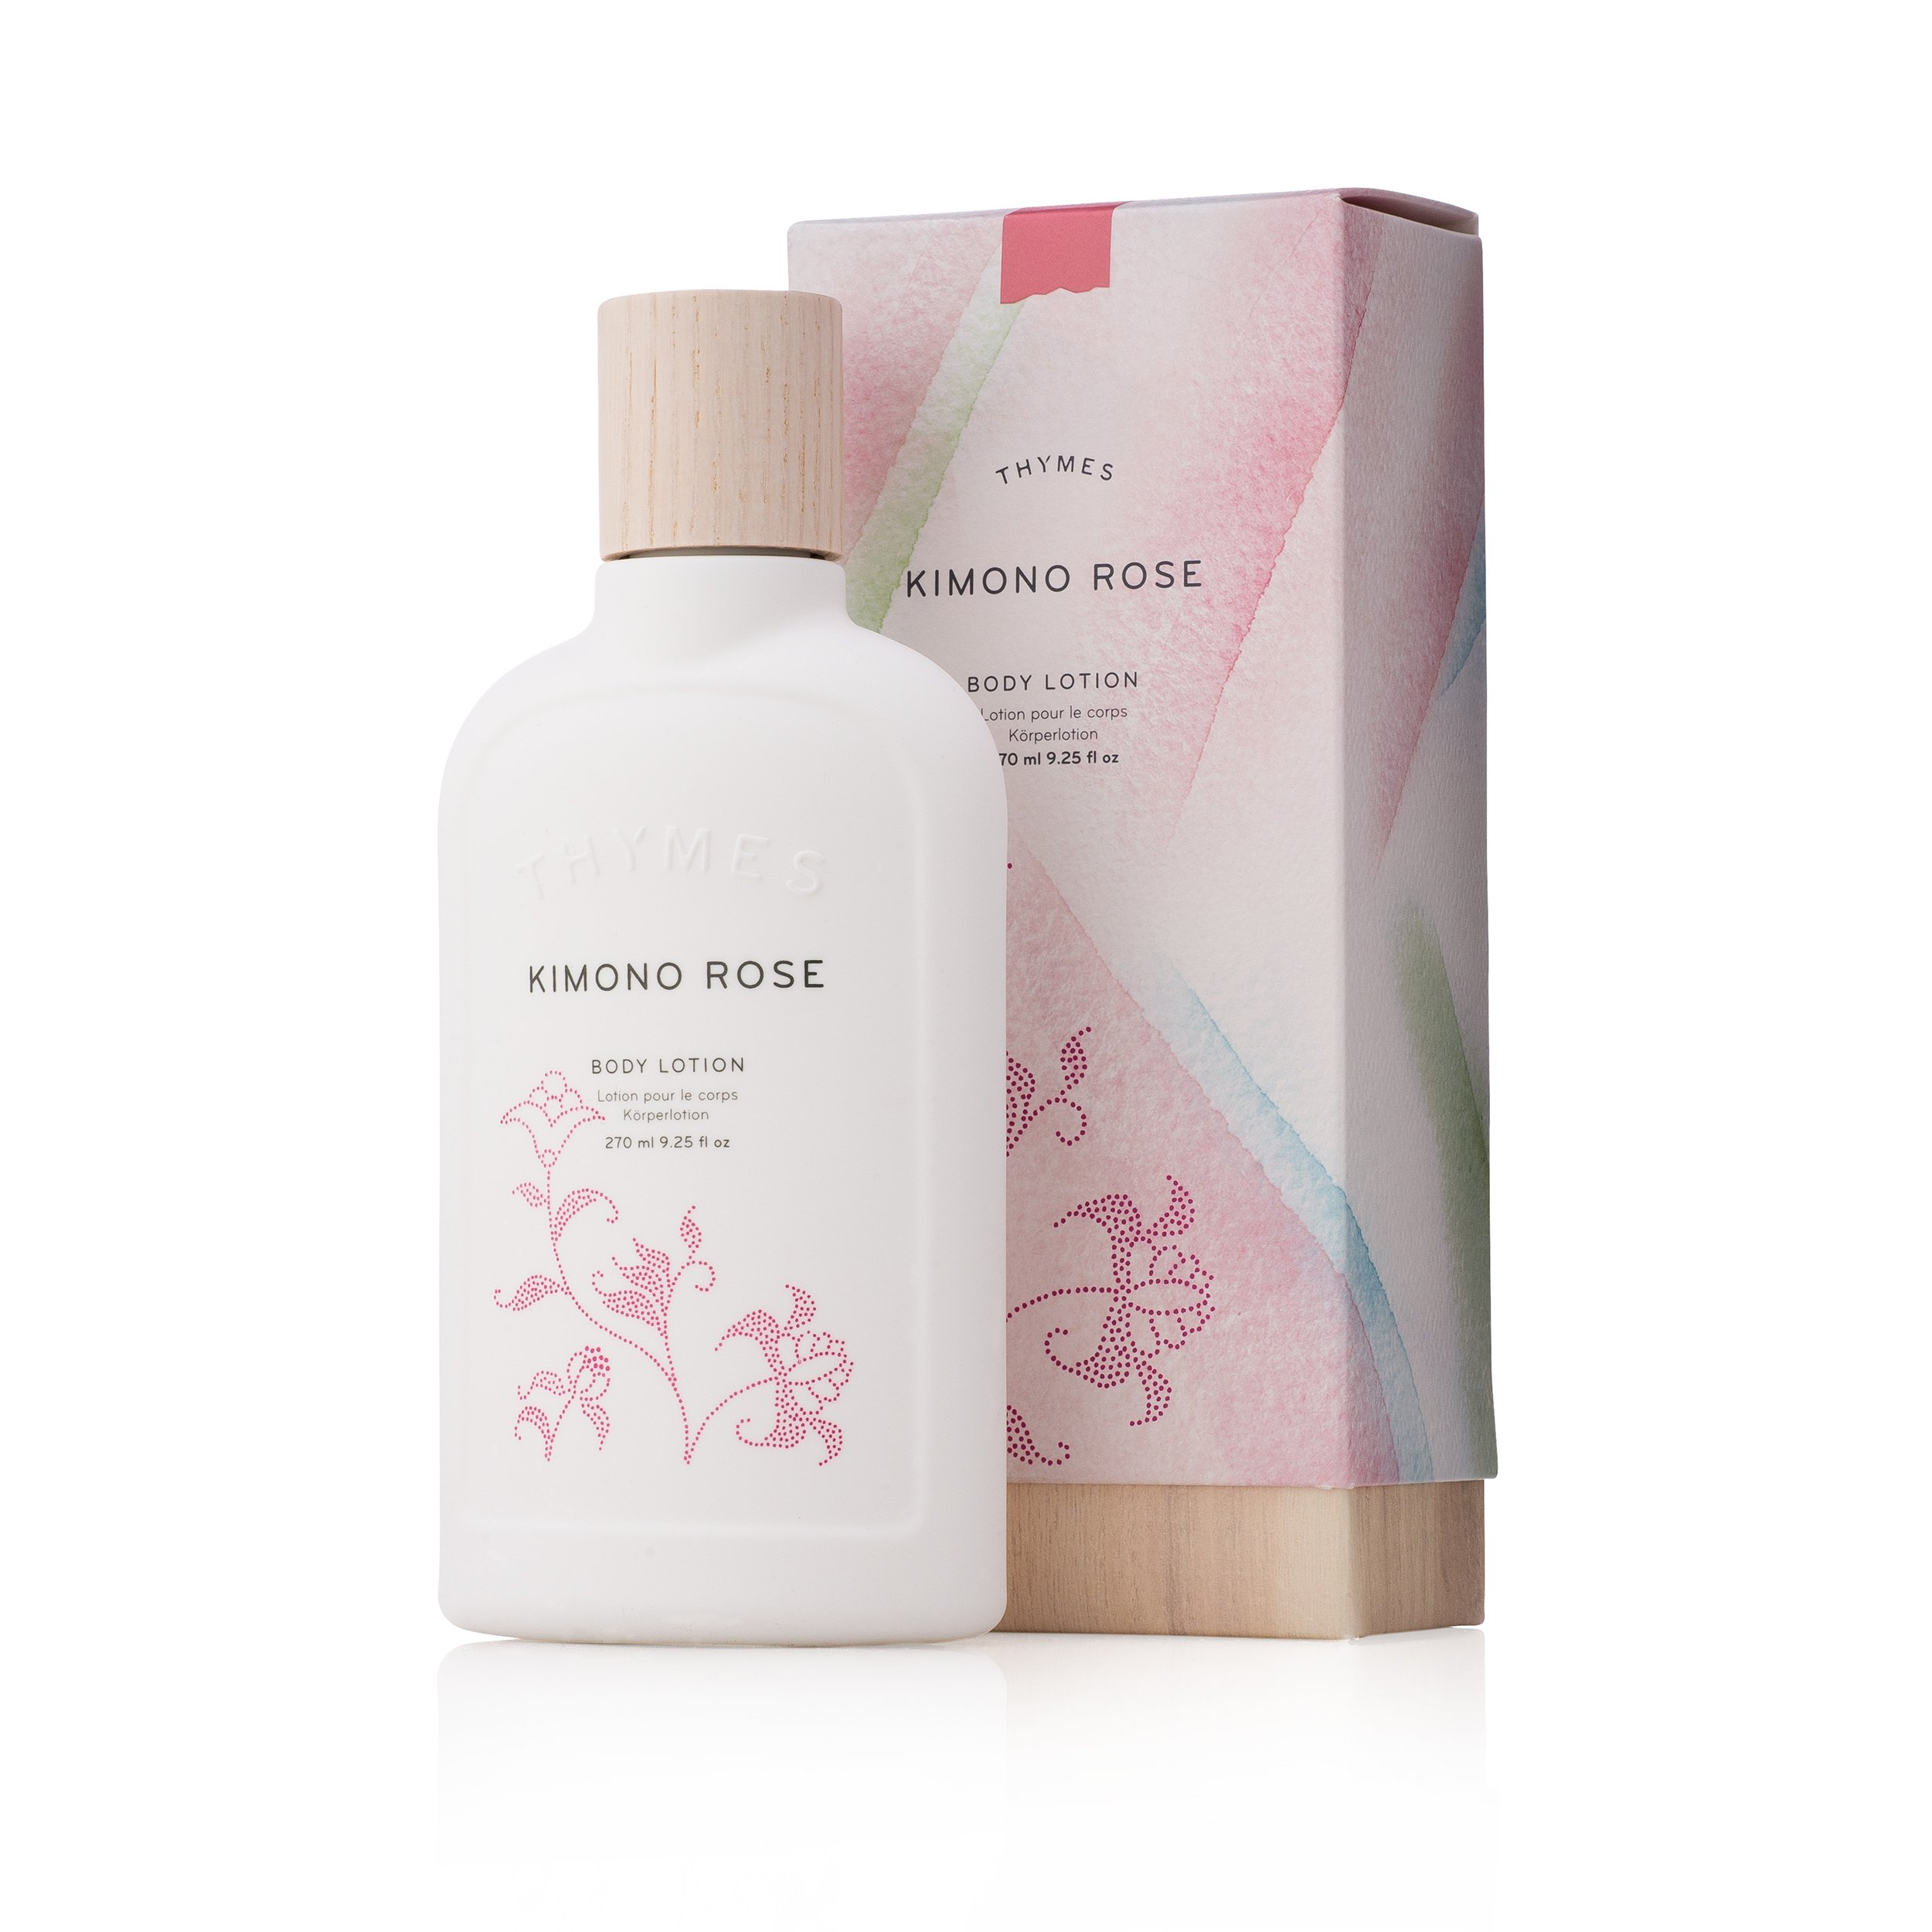 Thymes - Kimono Rose Body Lotion - Moisturizing with Soft Vanilla Rose Scent - 9.25 oz by Thymes